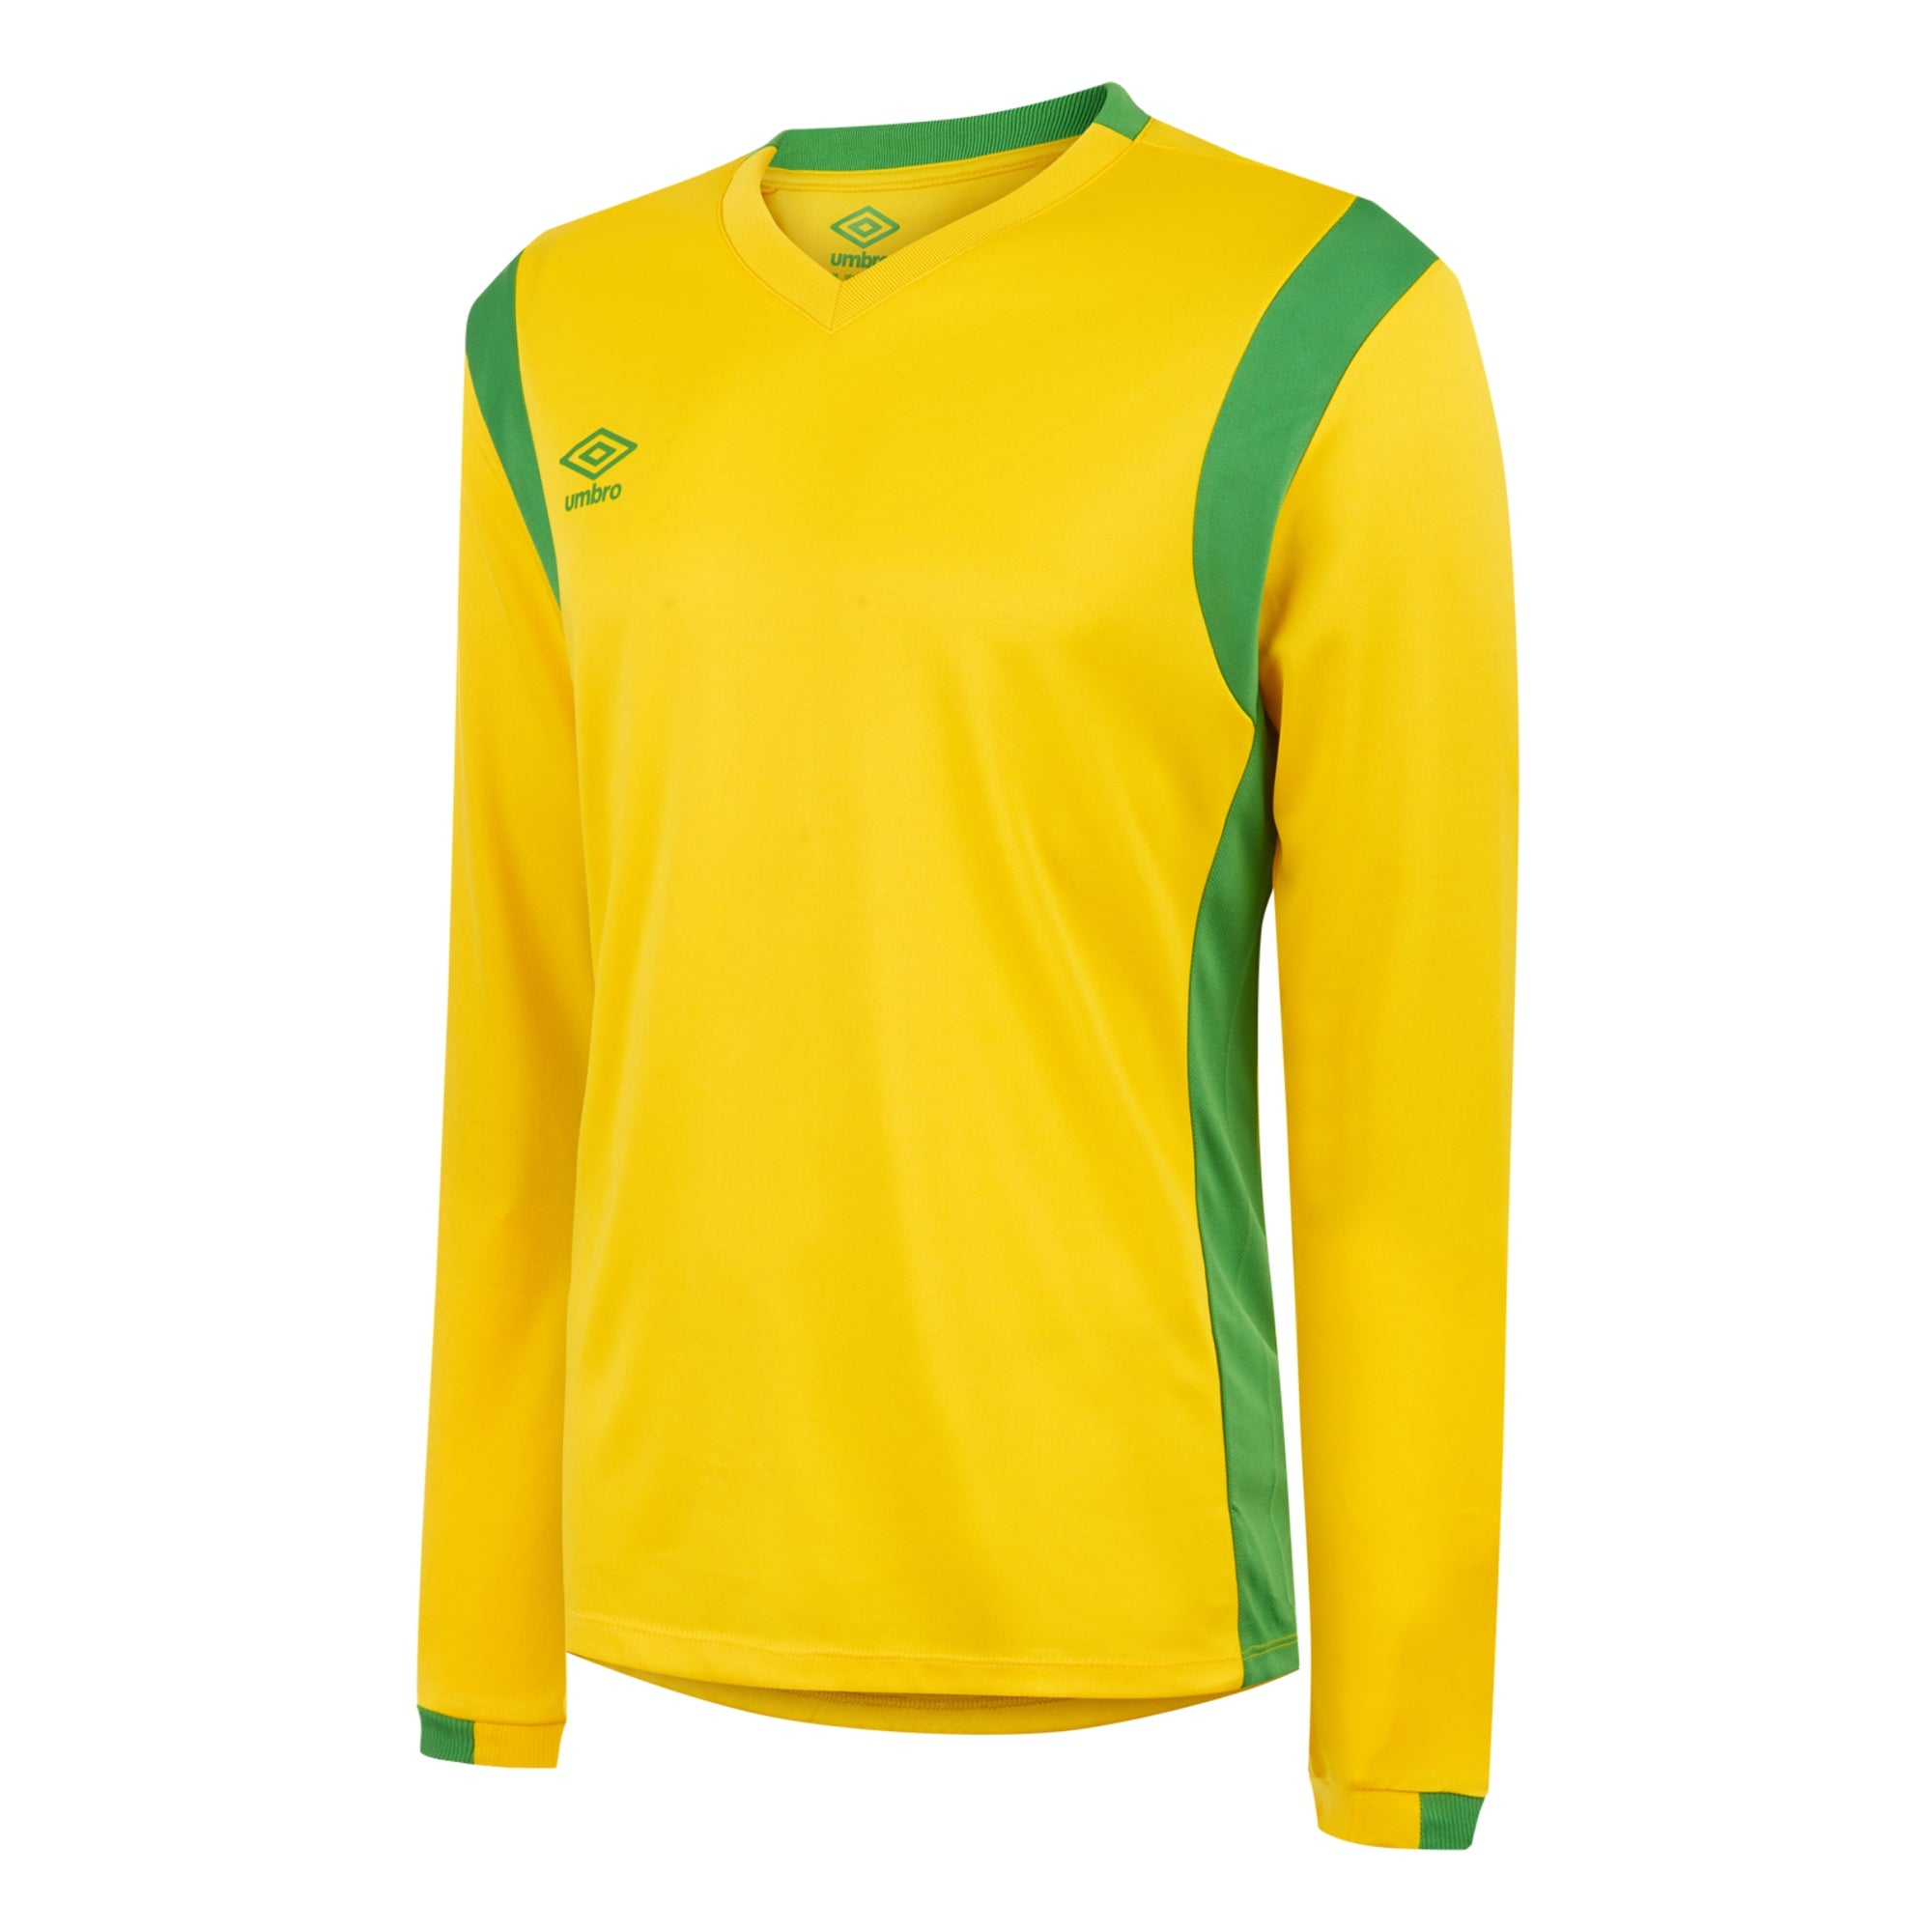 Umbro Spartan Jersey LS - Yellow/Emerald Green